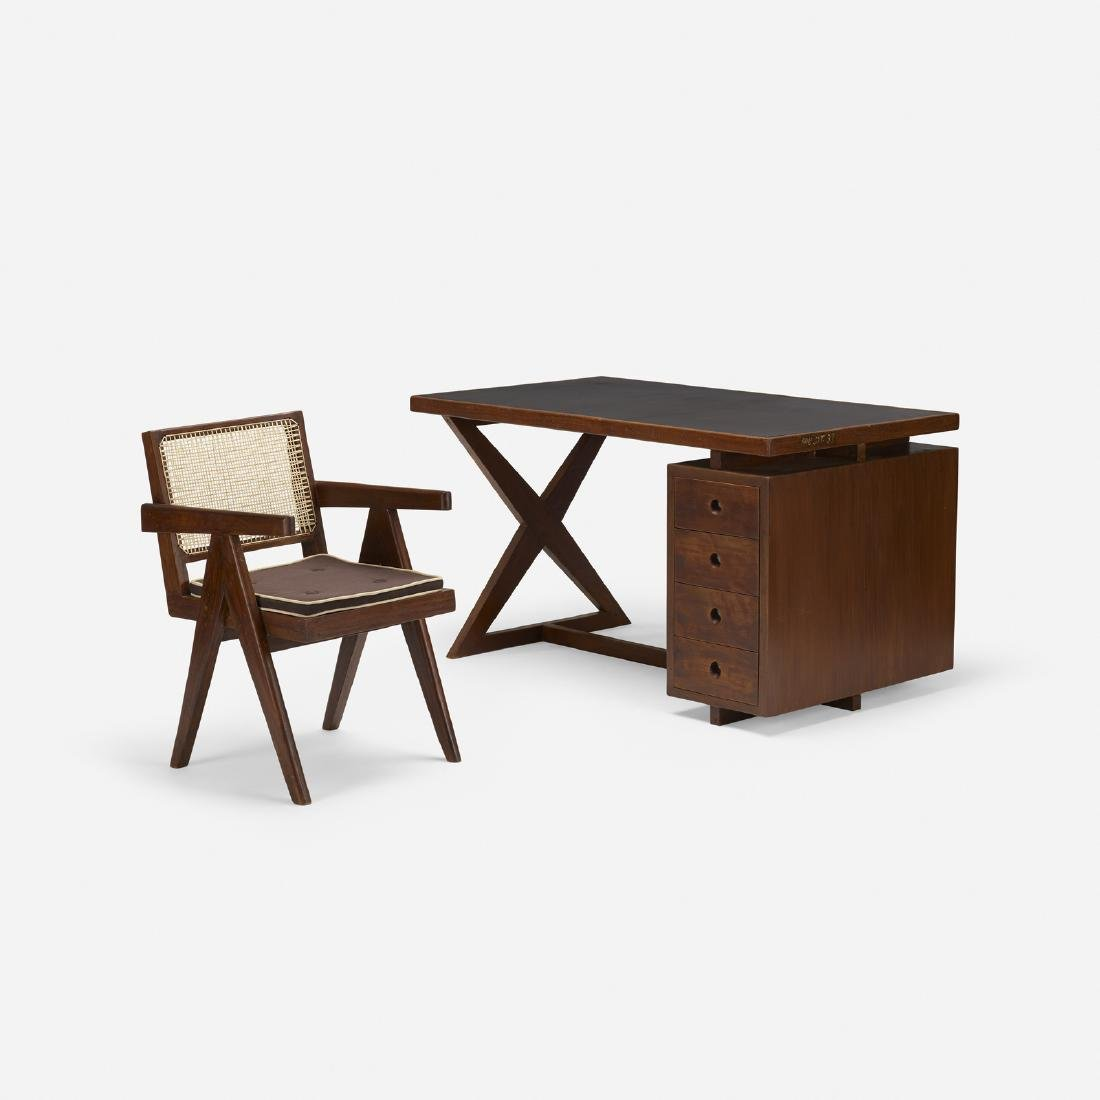 Pierre Jeanneret, desk and chair from Chandigarh - 2